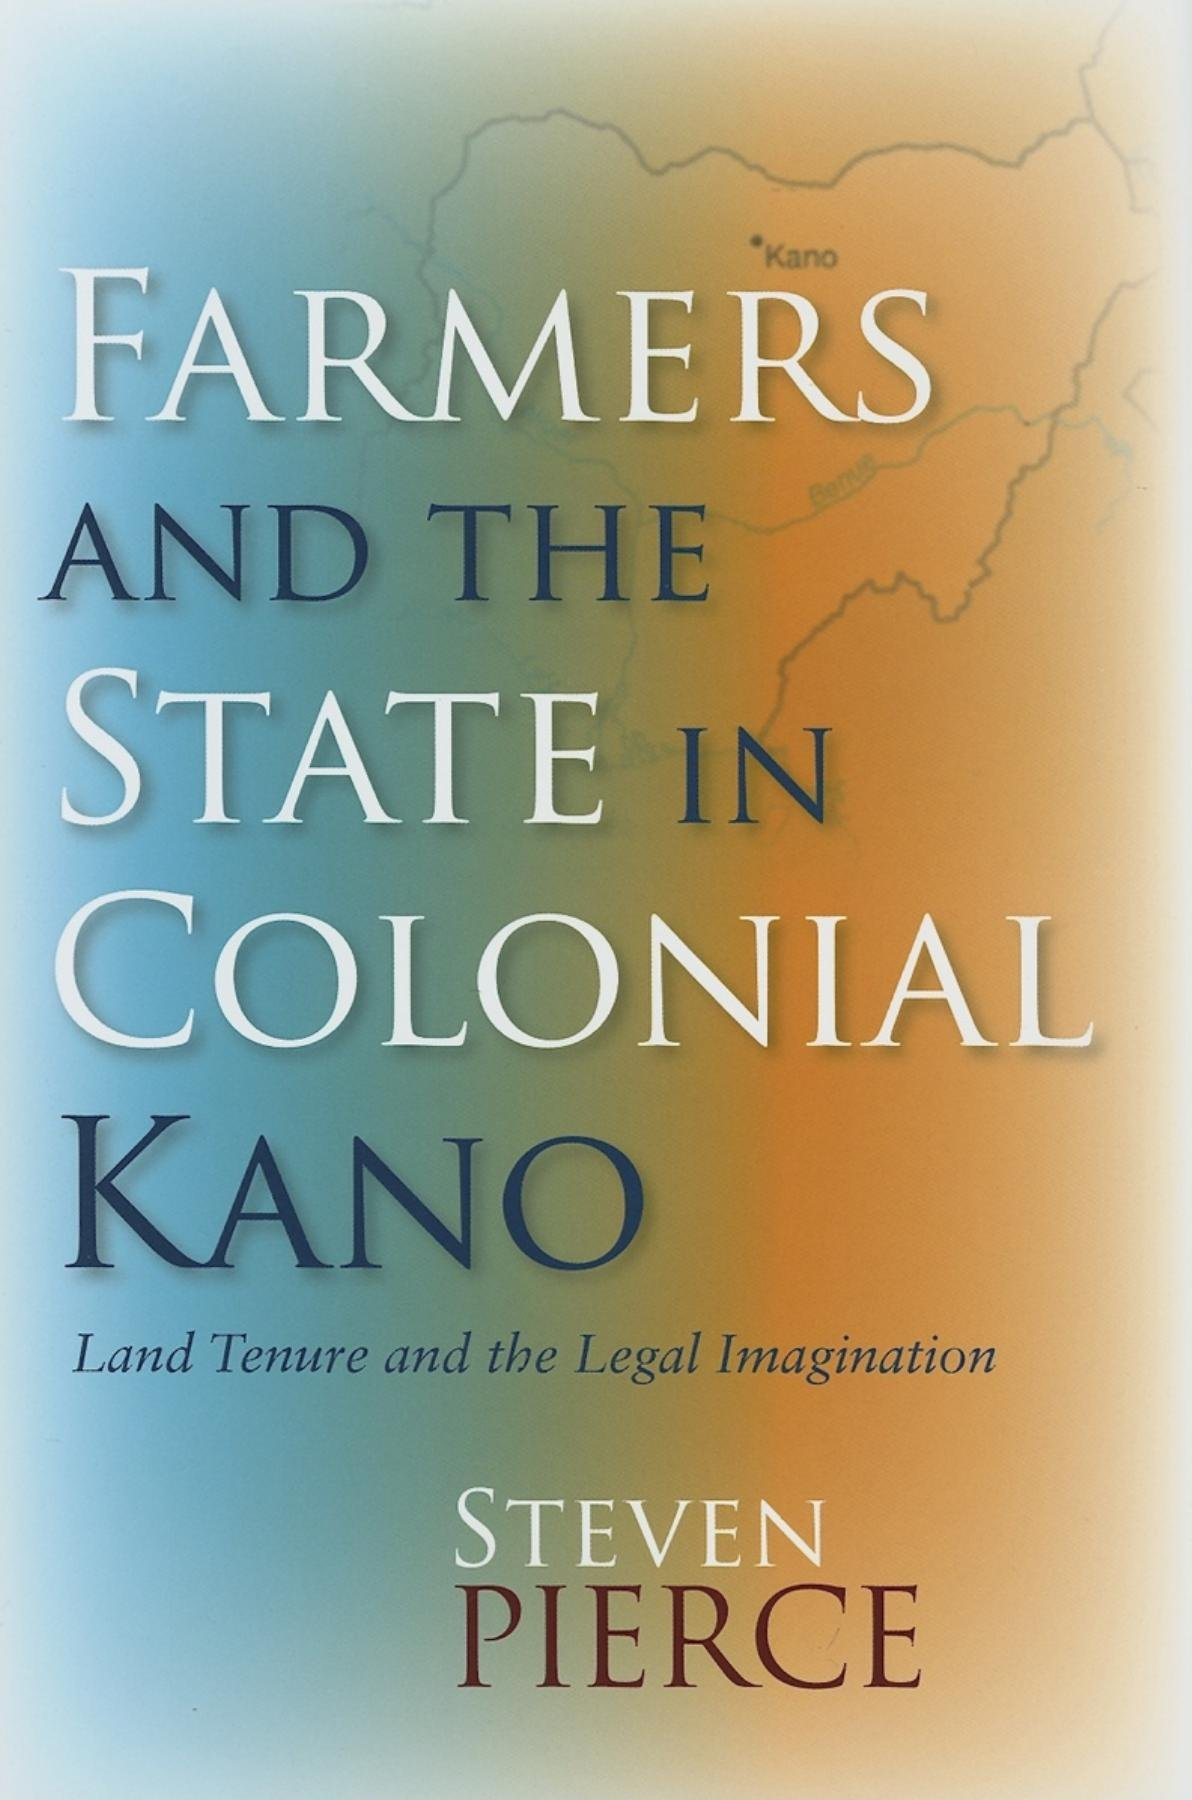 Farmers And the State in Colonial Kano: Land Tenure And the Legal Imagination